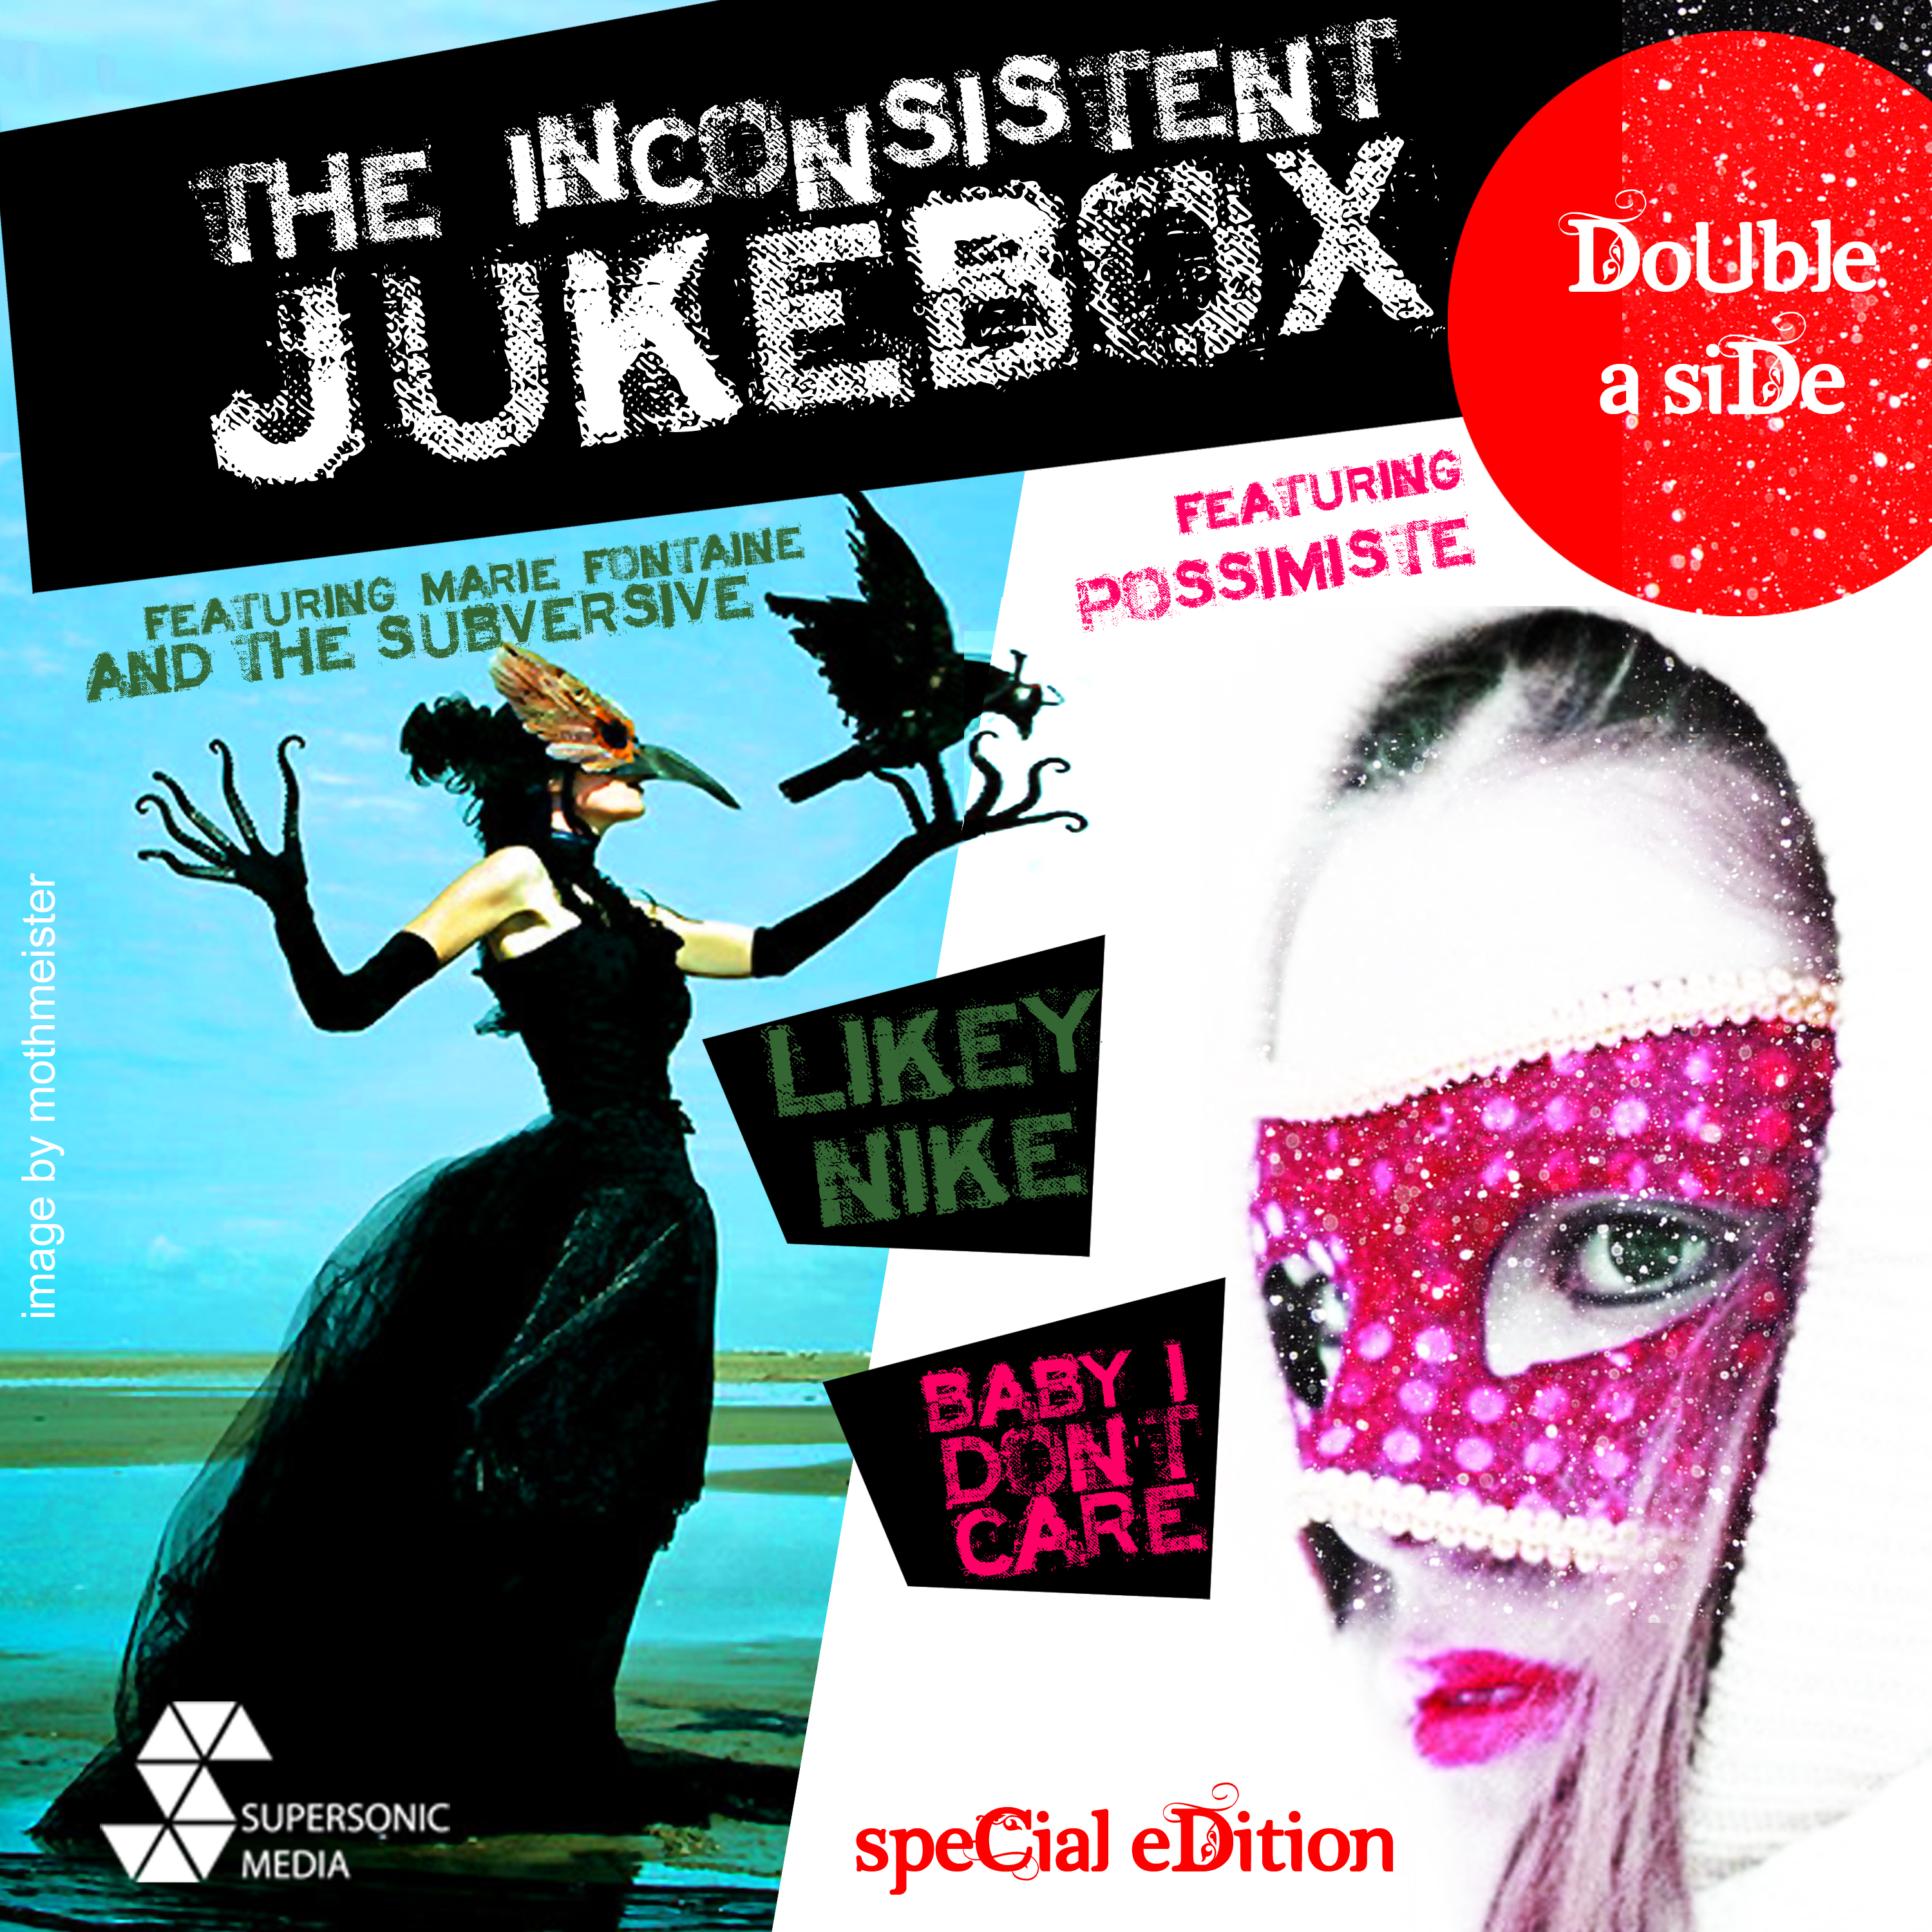 The Inconsistent Jukebox - Likey Nike / Baby I Don't Care